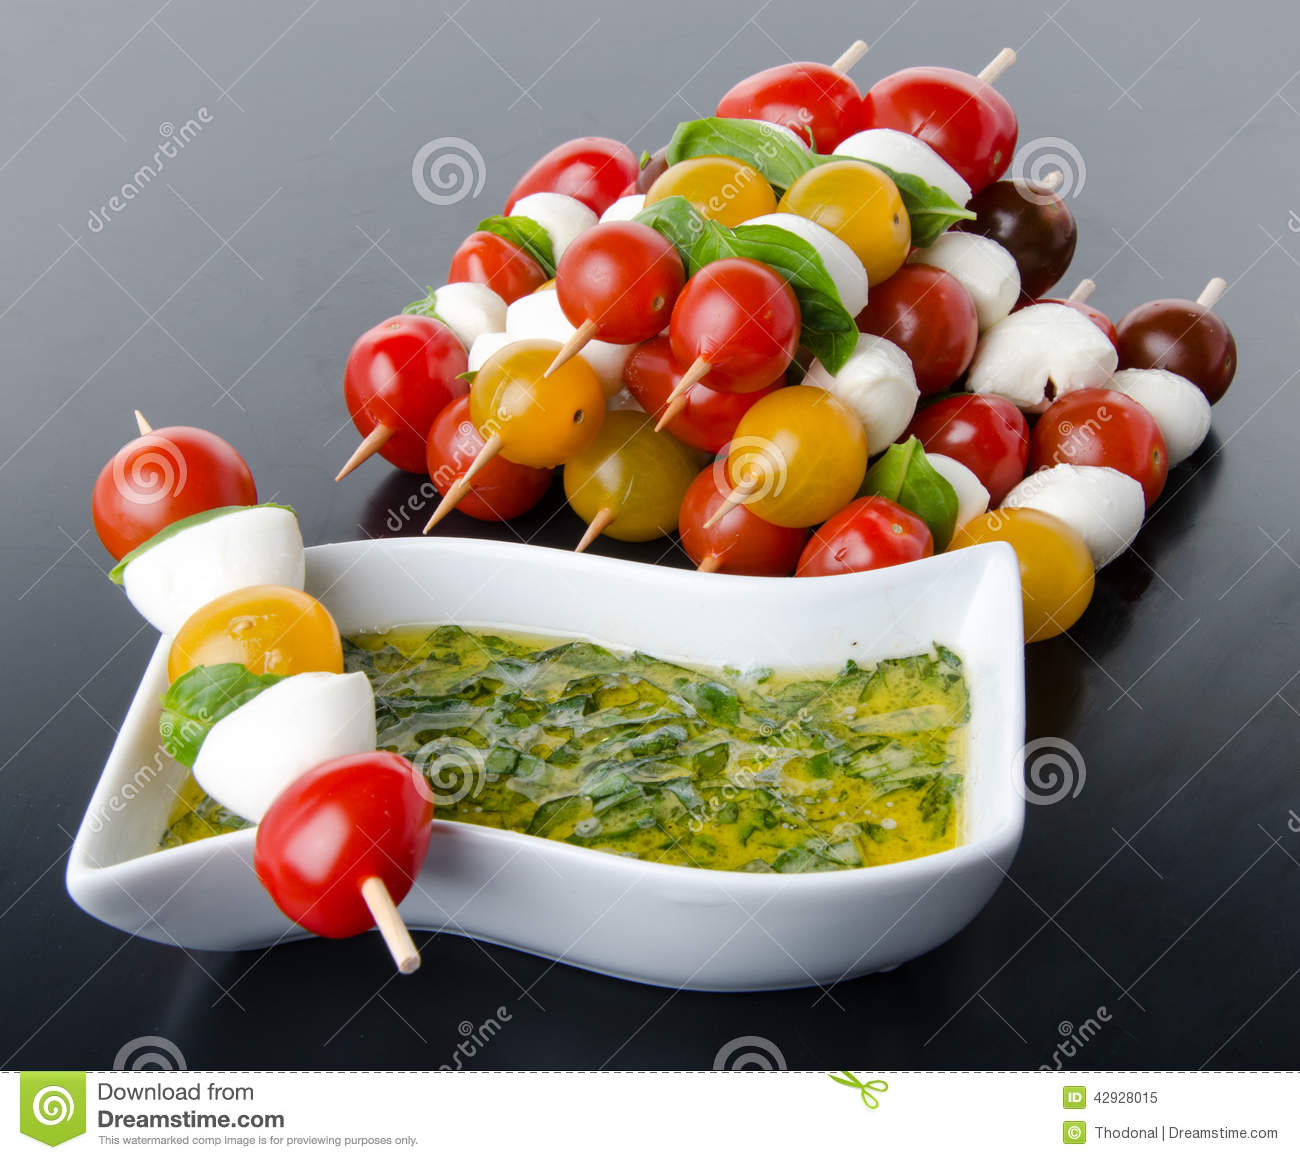 Cherry tomatoes and mozzarella on skewers and a vinaigrette sauce with basil